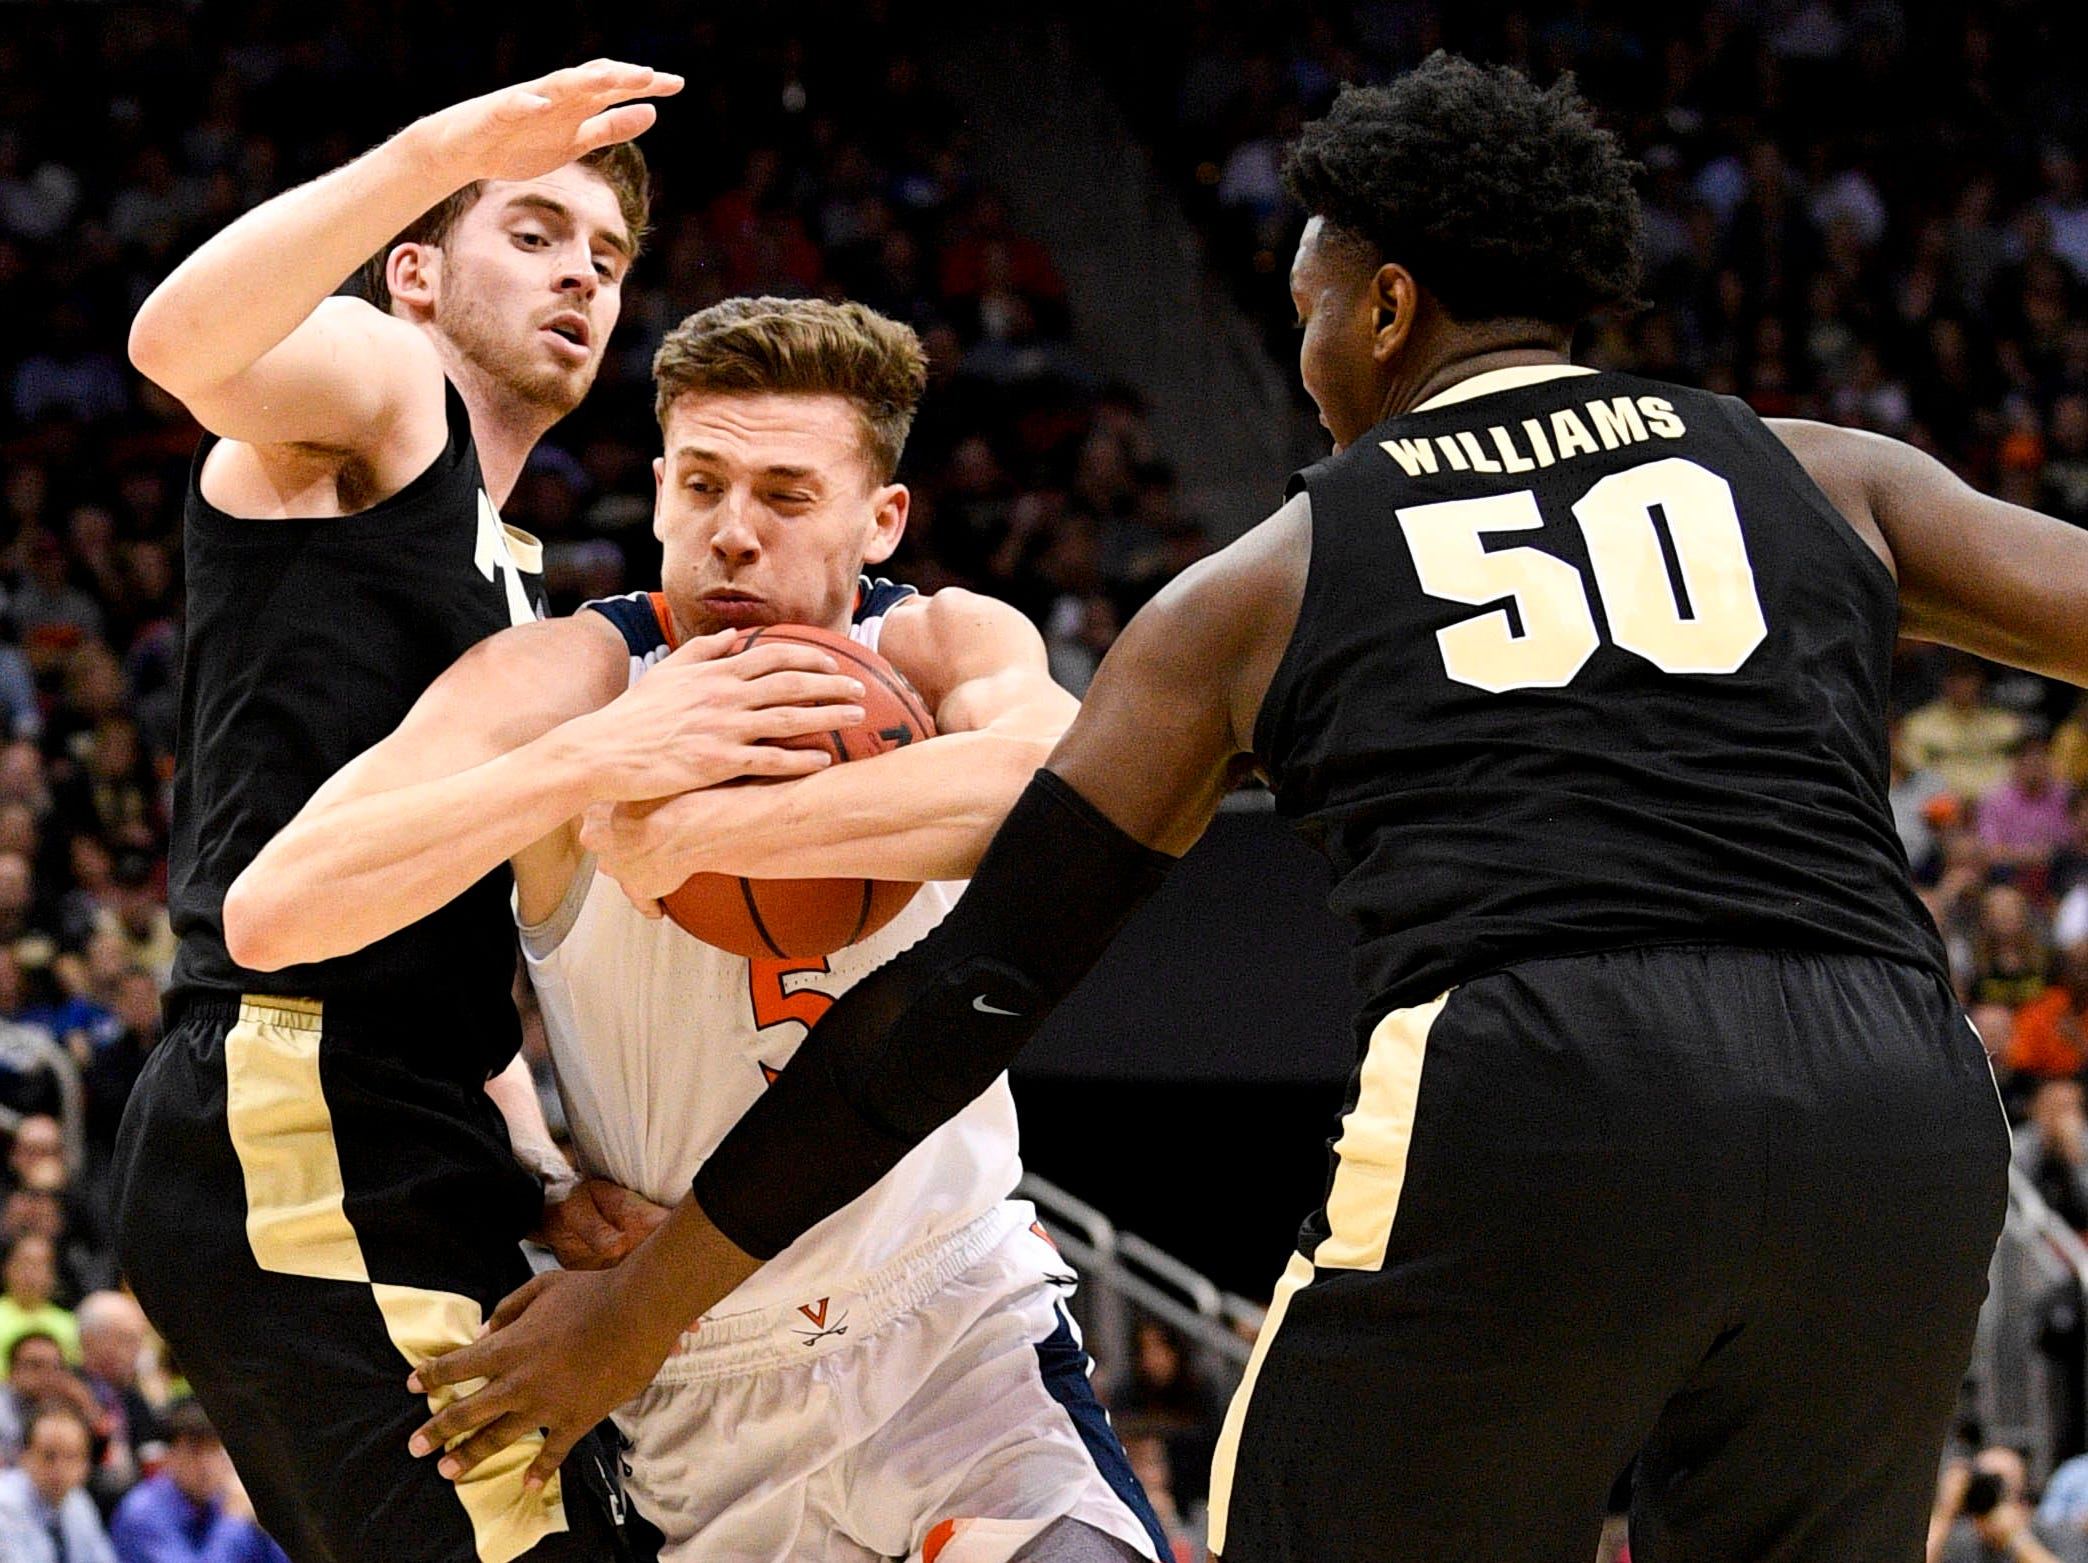 Mar 30, 2019; Louisville, KY, United States; Virginia Cavaliers guard Kyle Guy (5) drives through the defense of Purdue Boilermakers guard Ryan Cline (14) and forward Trevion Williams (50) during the first half in the championship game of the south regional of the 2019 NCAA Tournament at KFC Yum Center. Mandatory Credit: Jamie Rhodes-USA TODAY Sports